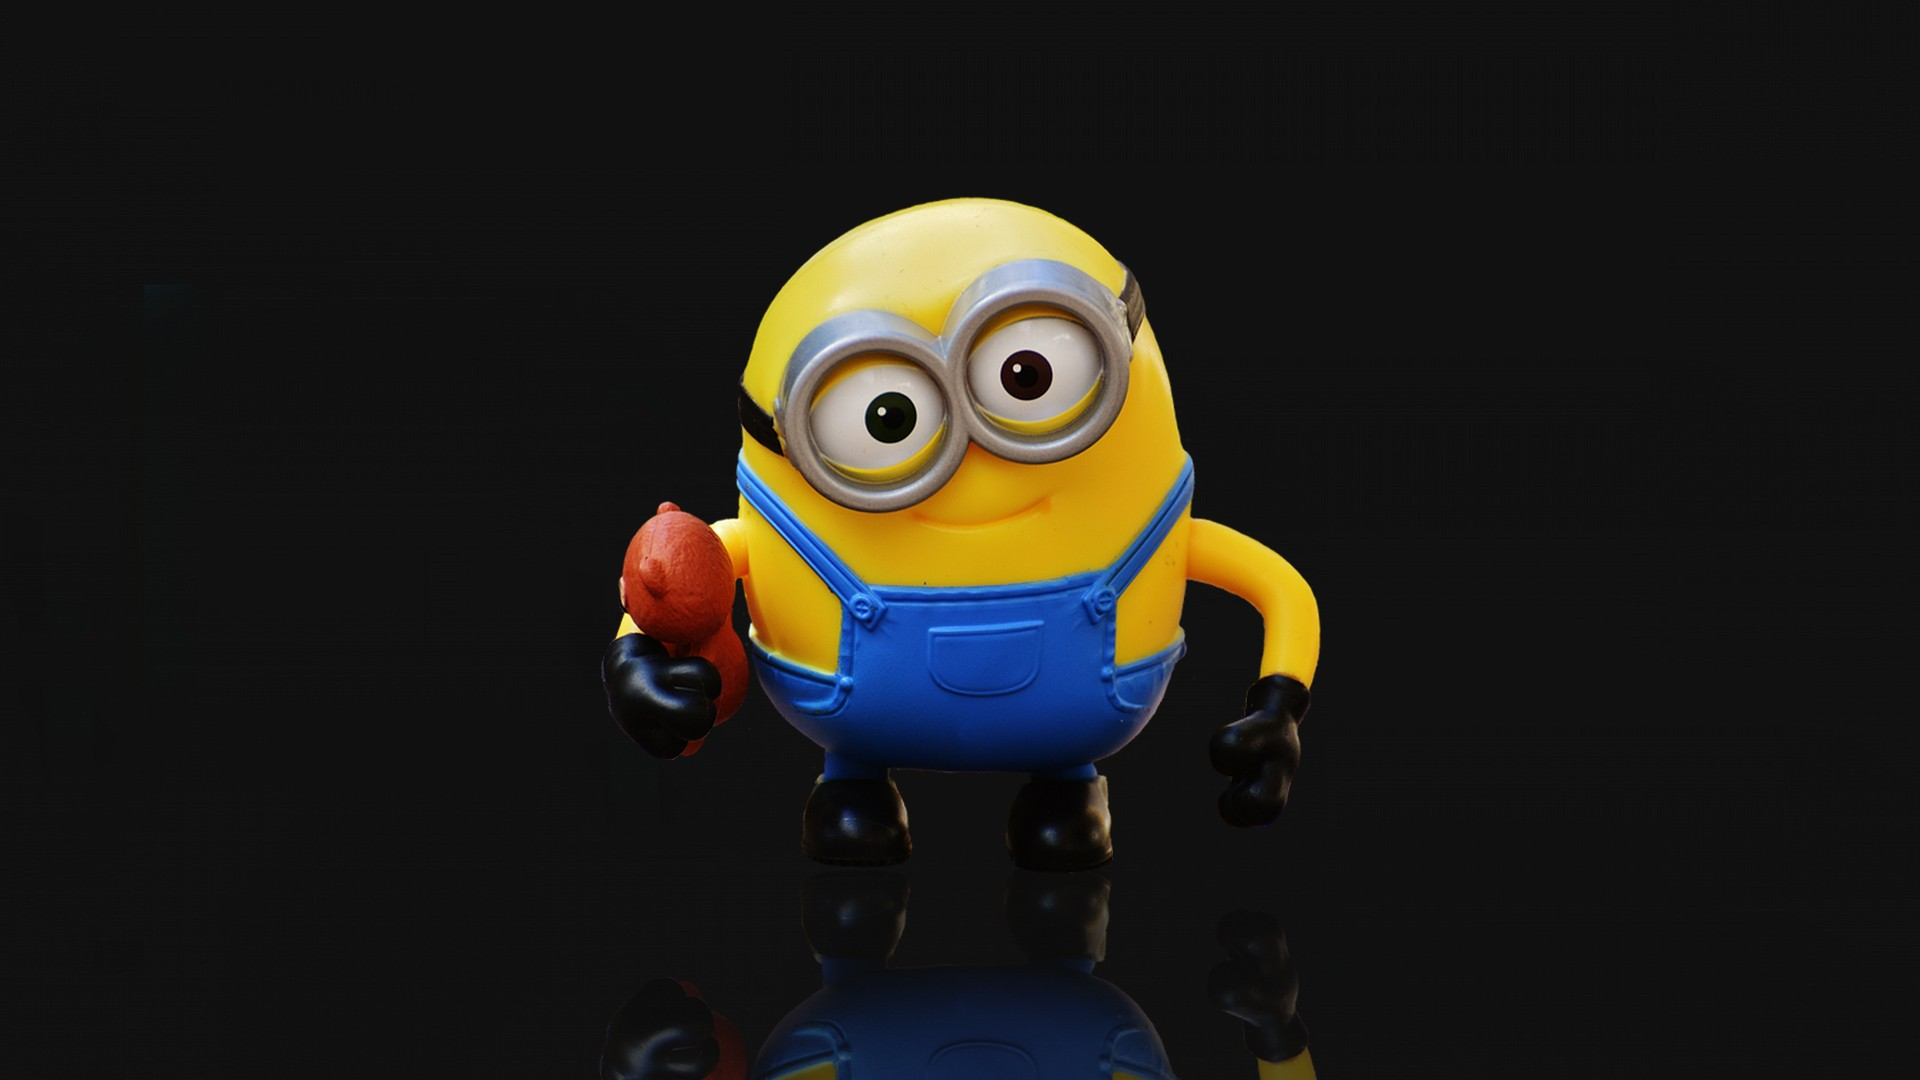 Minions Hd Wallpapers - Minions Quotes Hd Wallpapers For Desktop - HD Wallpaper